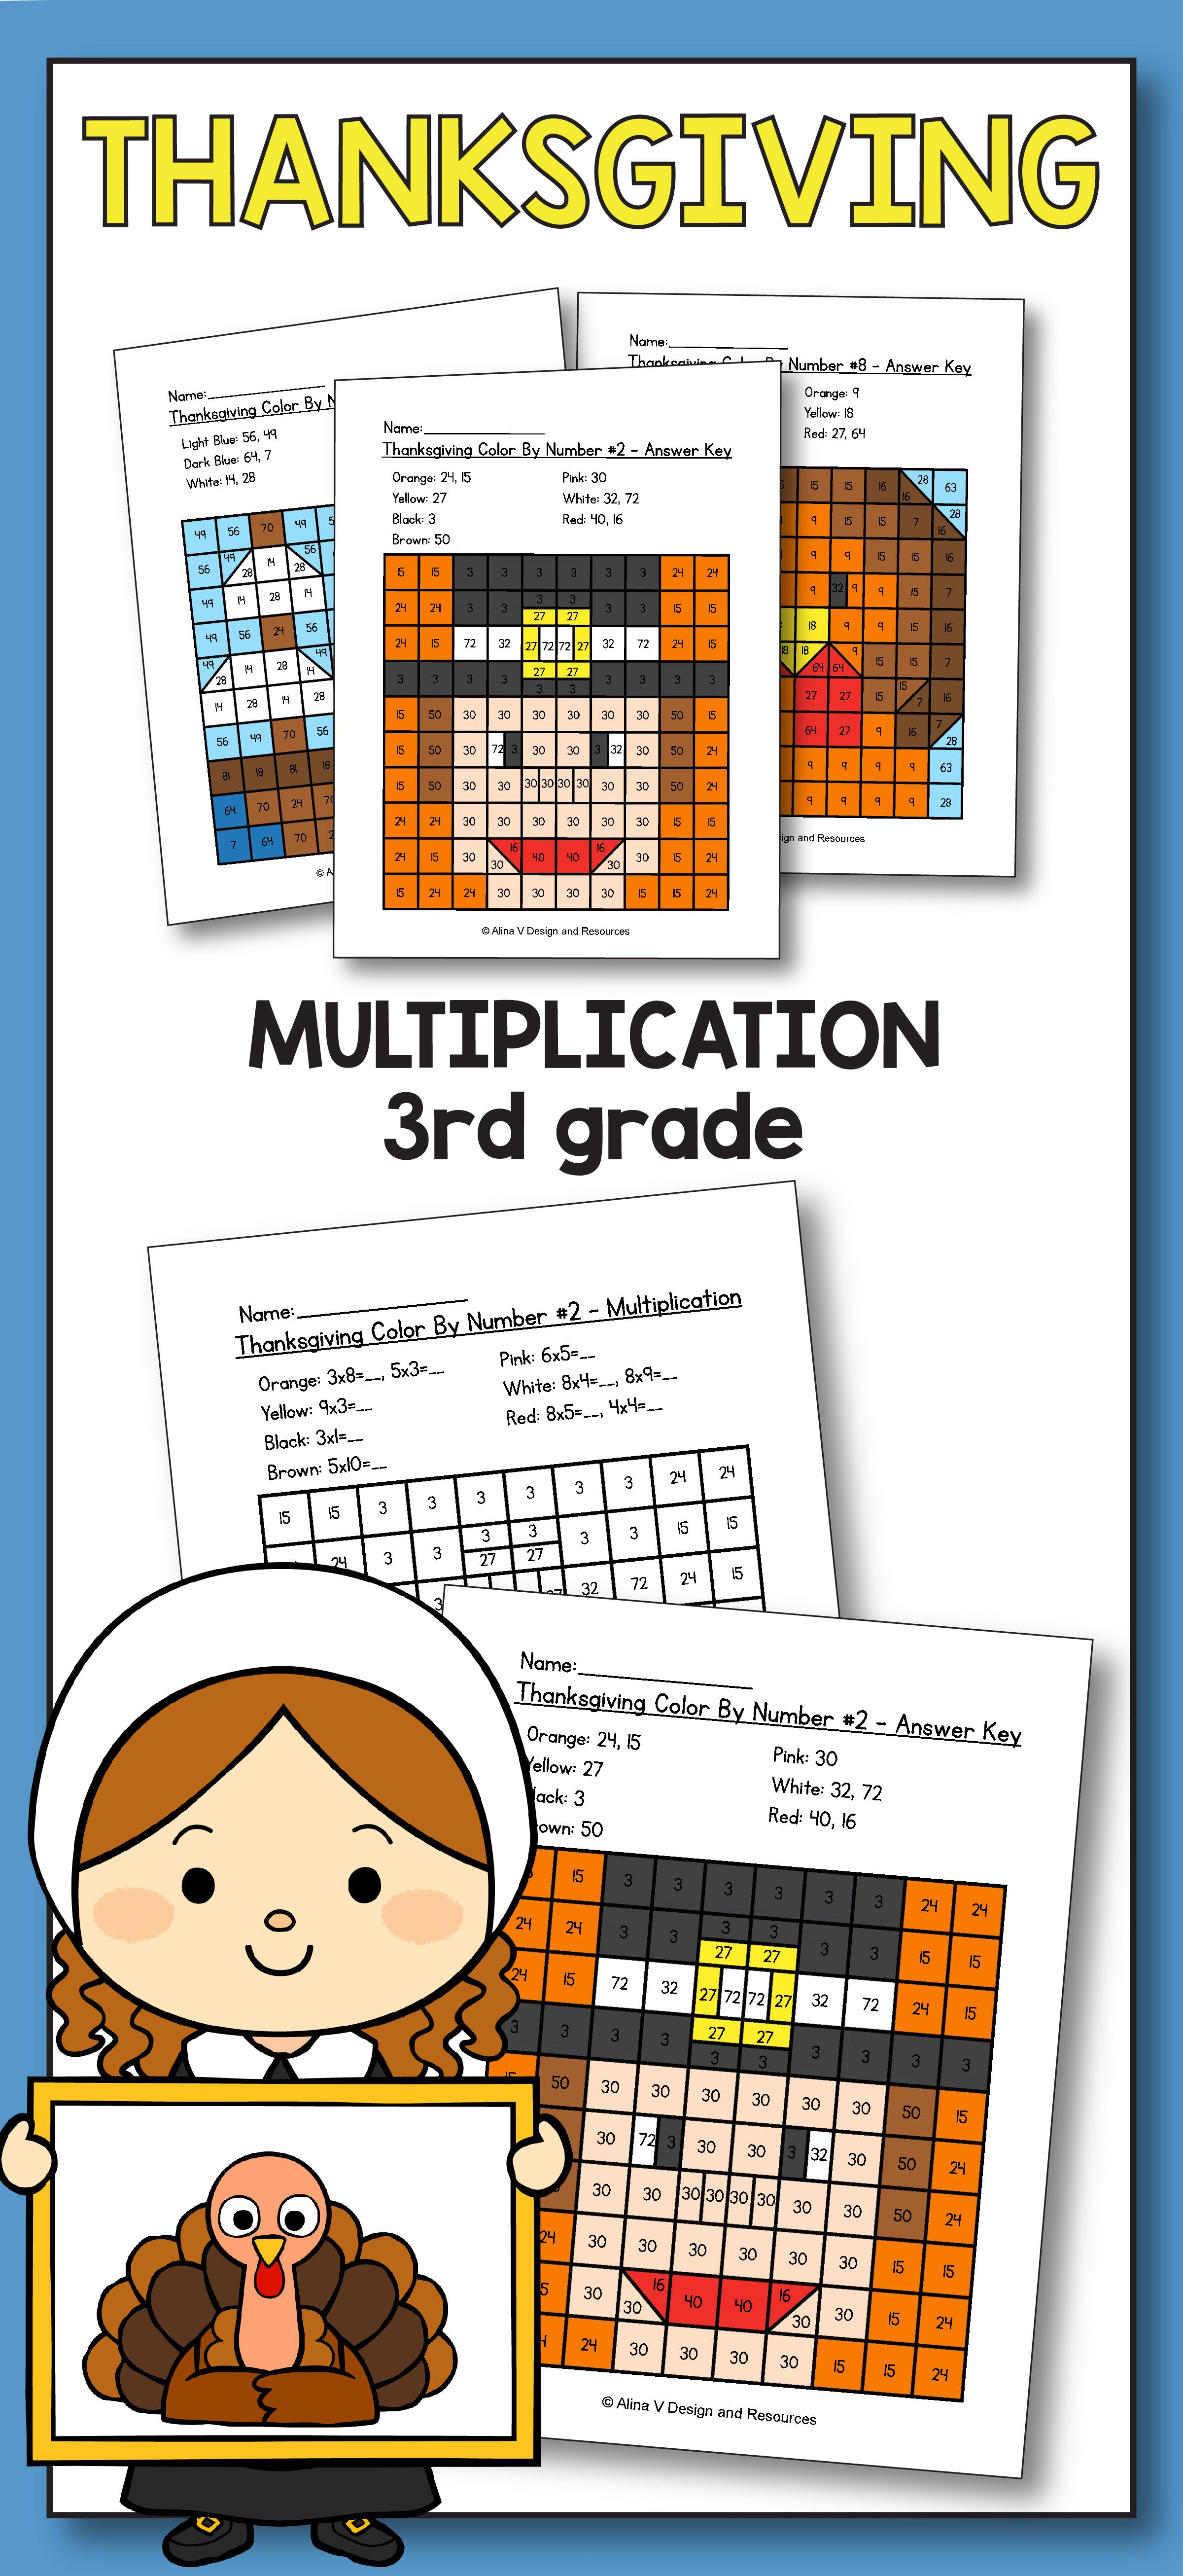 small resolution of Thanksgiving Multiplication Math Worksheets for 3rd grade kids is fun with  the…   Thanksgiving math worksheets